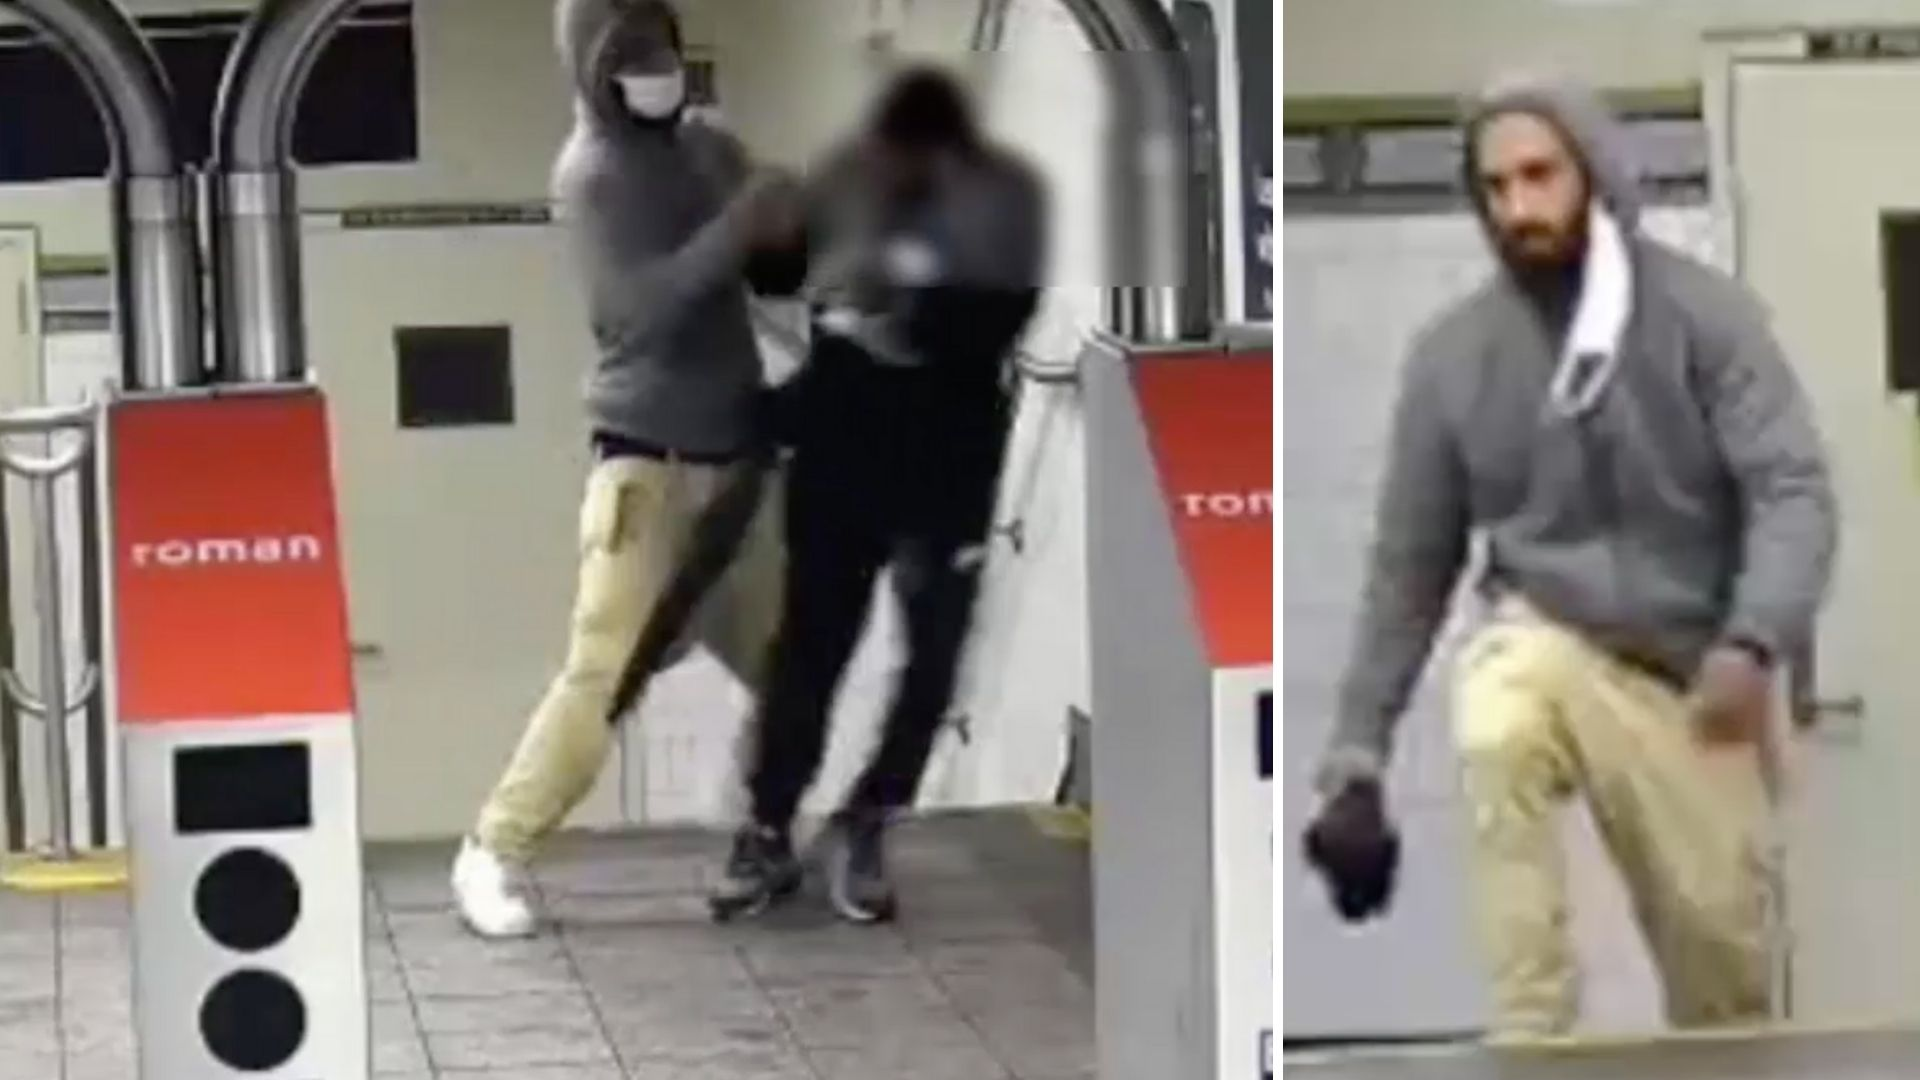 Man attacked in Atlantic Ave-Barclays Center subway station